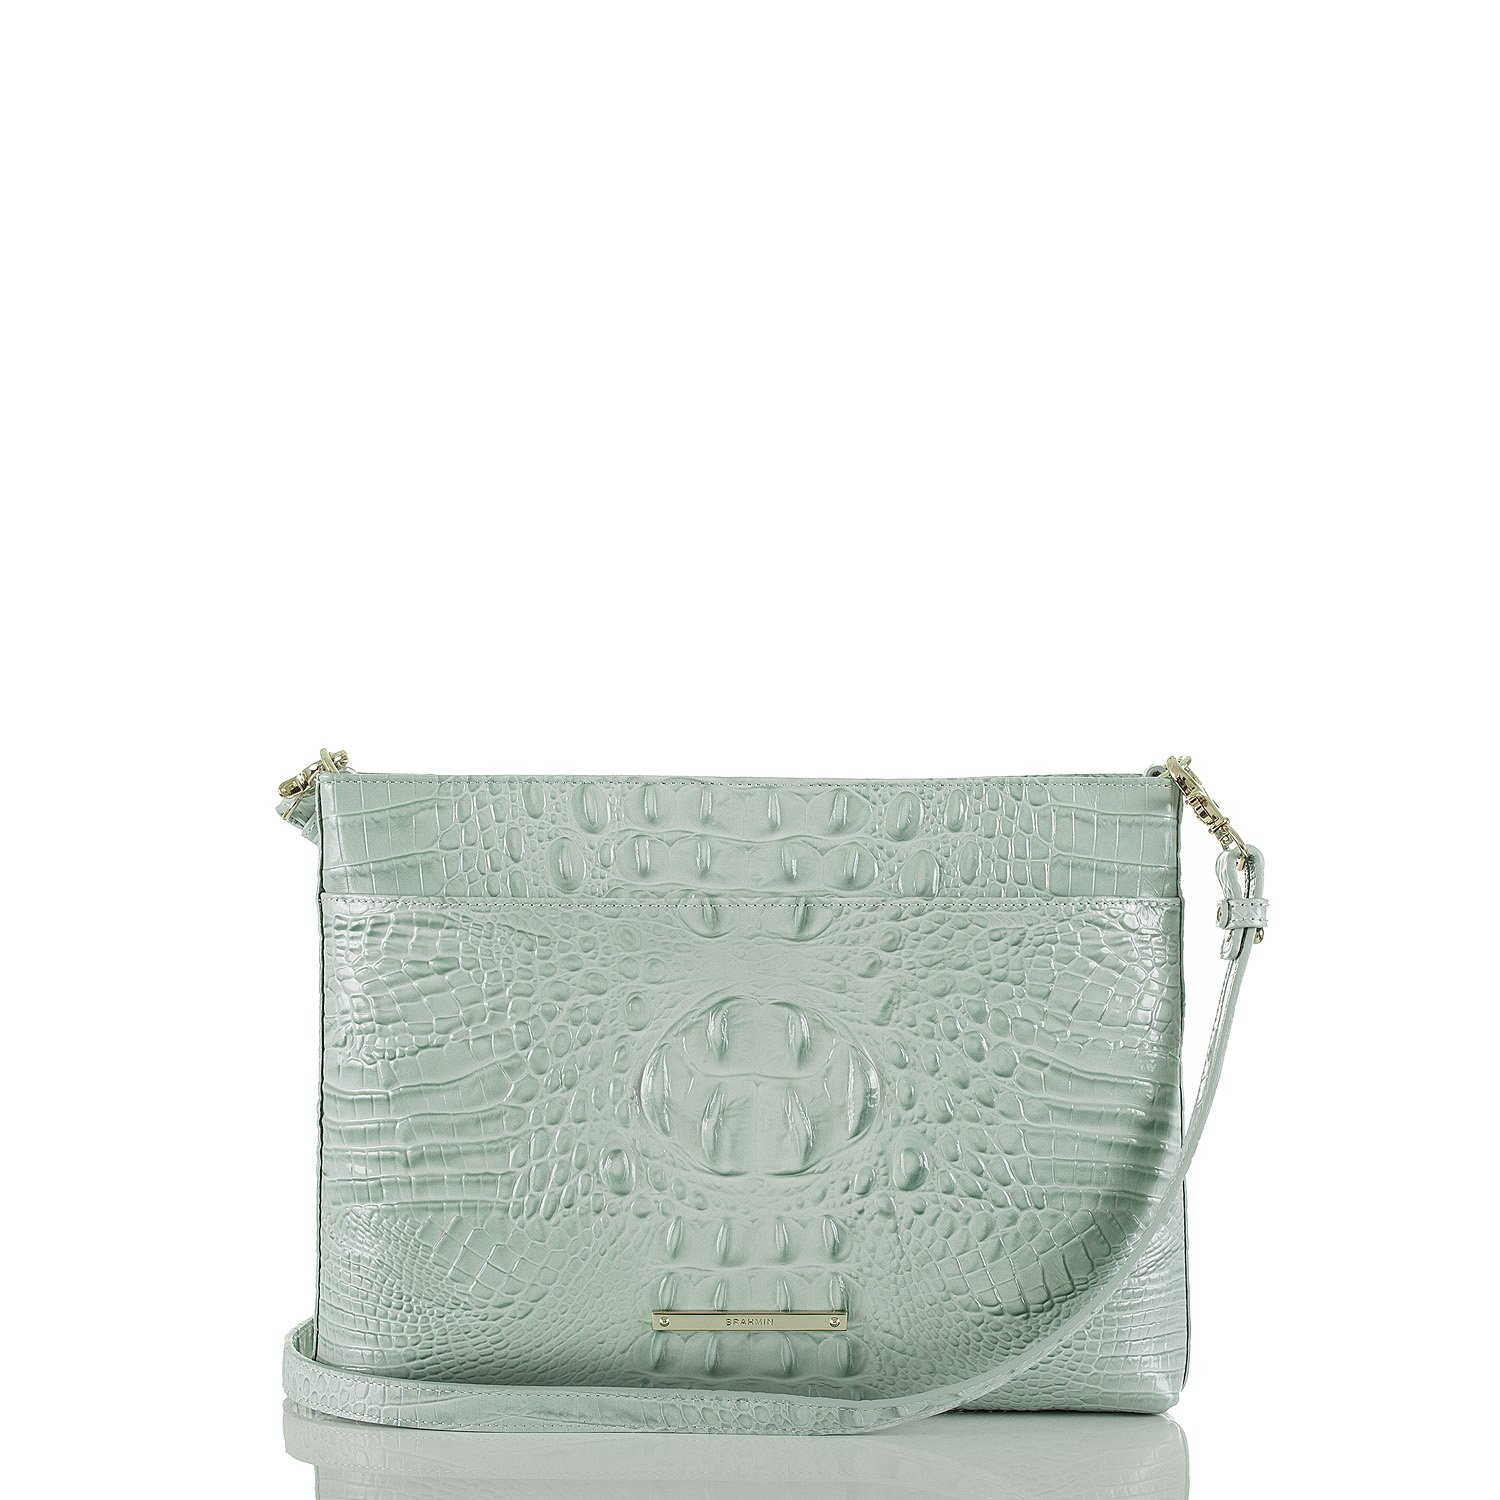 NEW AUTHENTIC BRAHMIN REMY MESSENGER CROSSBODY BAG (Sea Glass Melbourne) by Brahmin